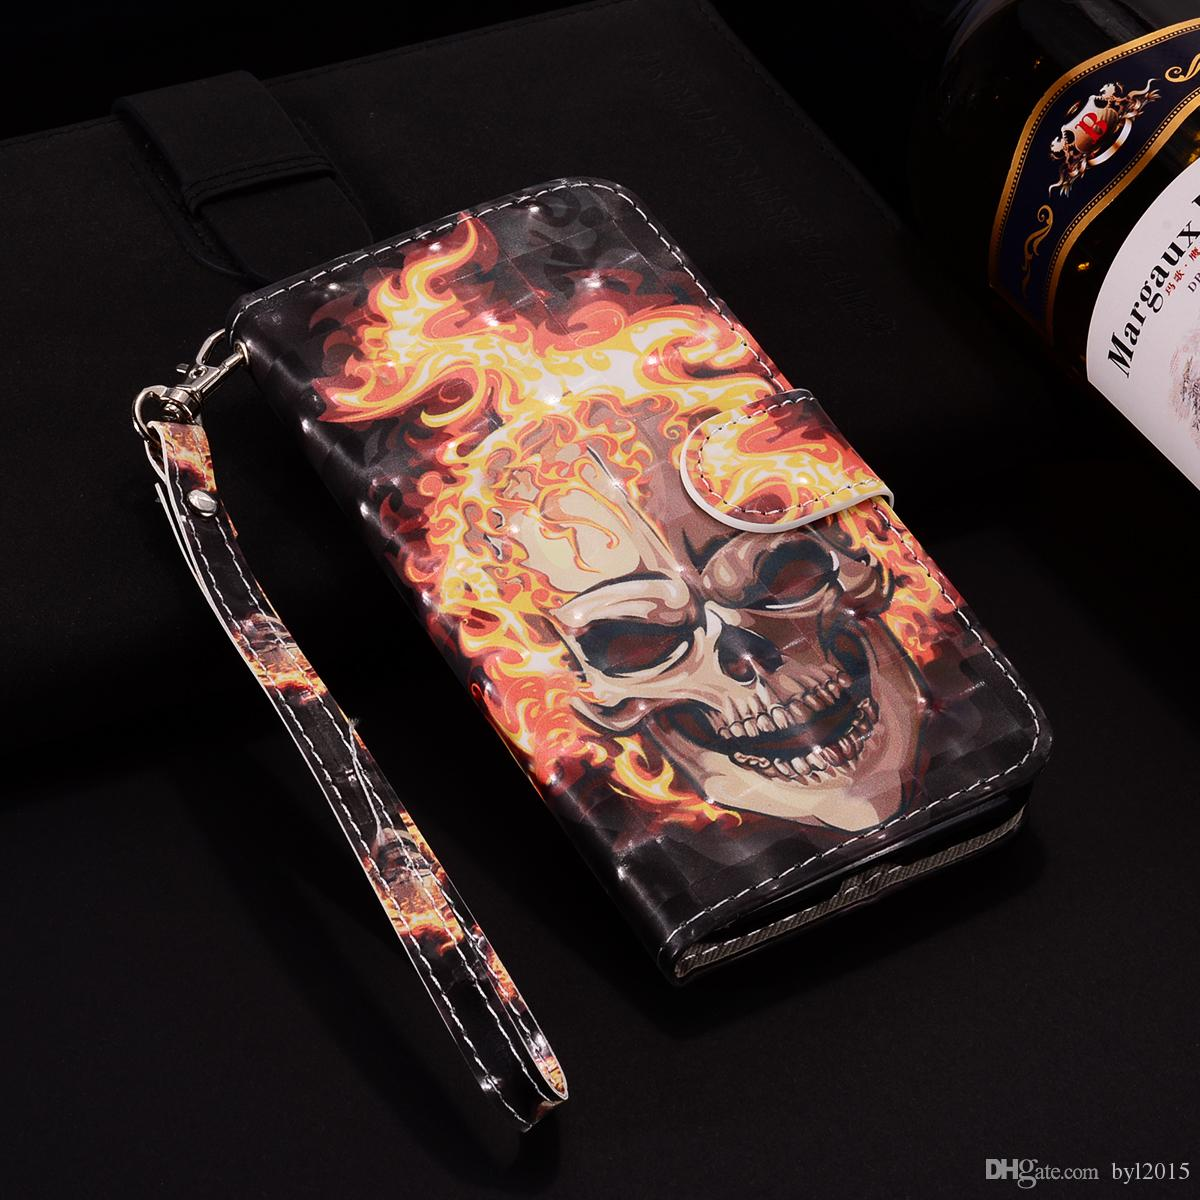 Leather Flip cover phone case for Iphone 6/6s/7/8/7plus/x/xs/xr/xs max Painted 3D Flame skull with Credit card slot wallet shockproof cases